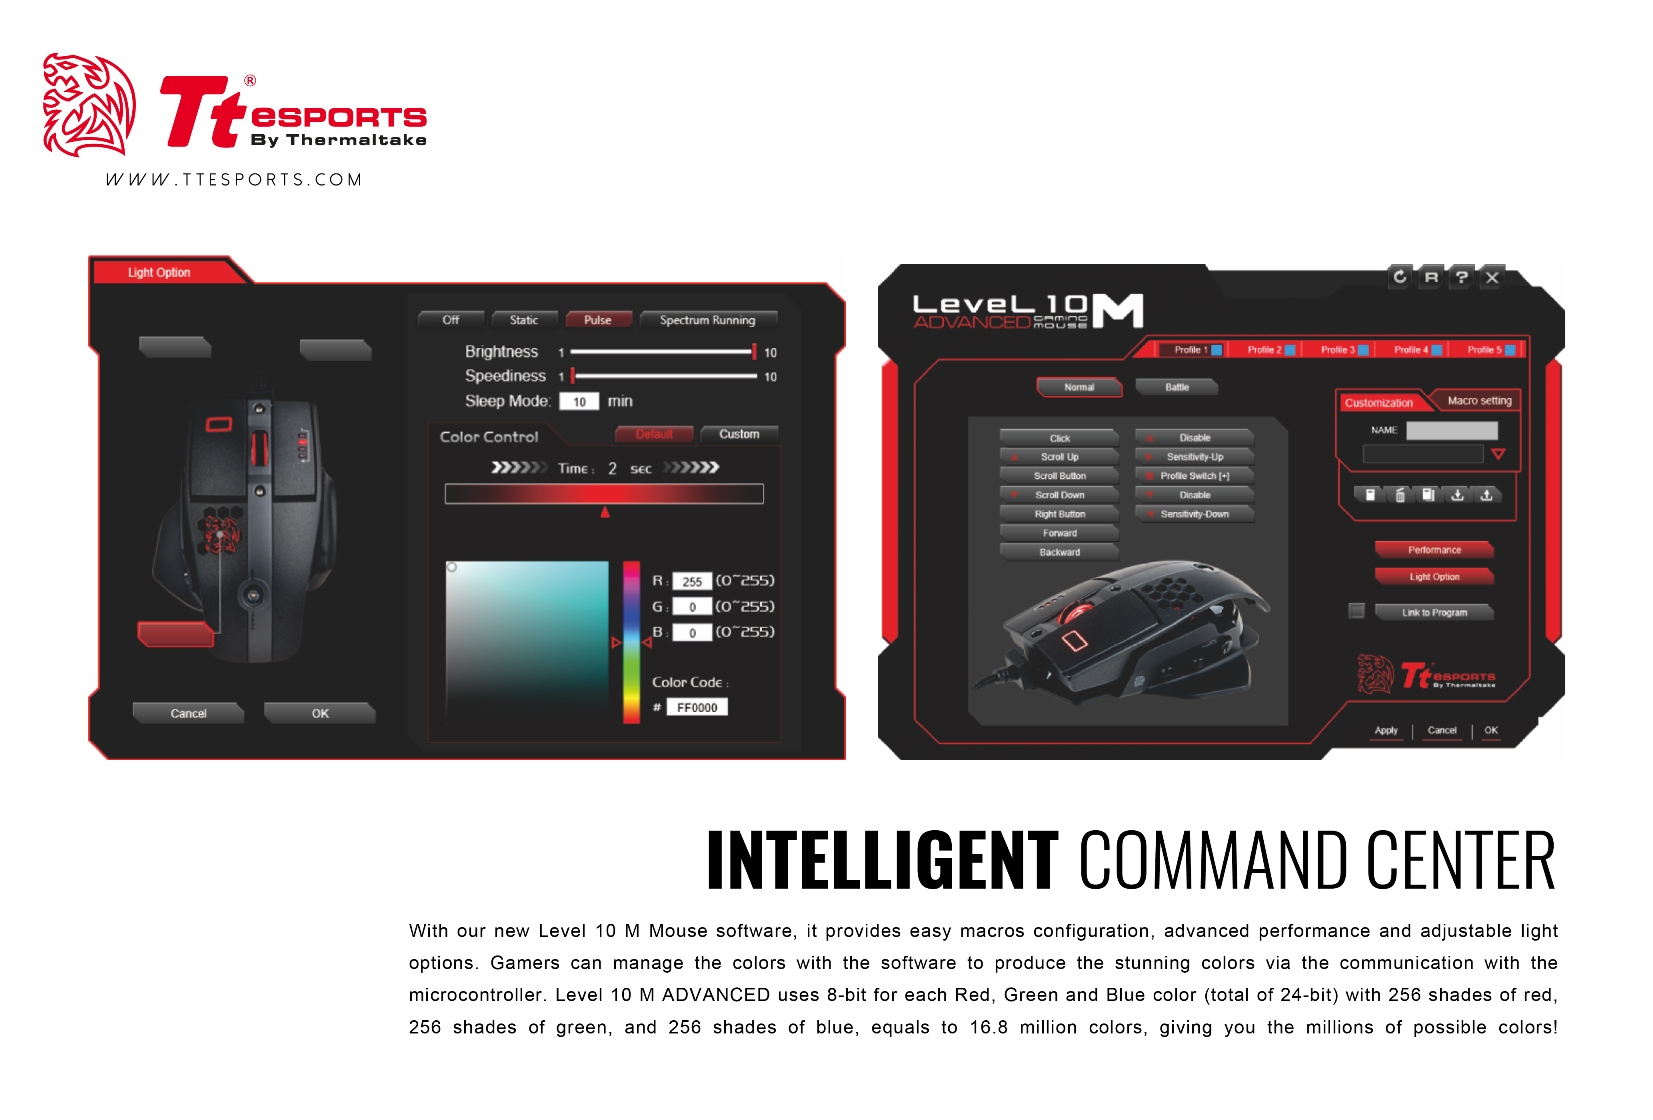 Tt eSPORTS Level 10 M Advanced Mouse Launched Gaming, Level 10 M, mouse, Thermaltake, Tt eSports